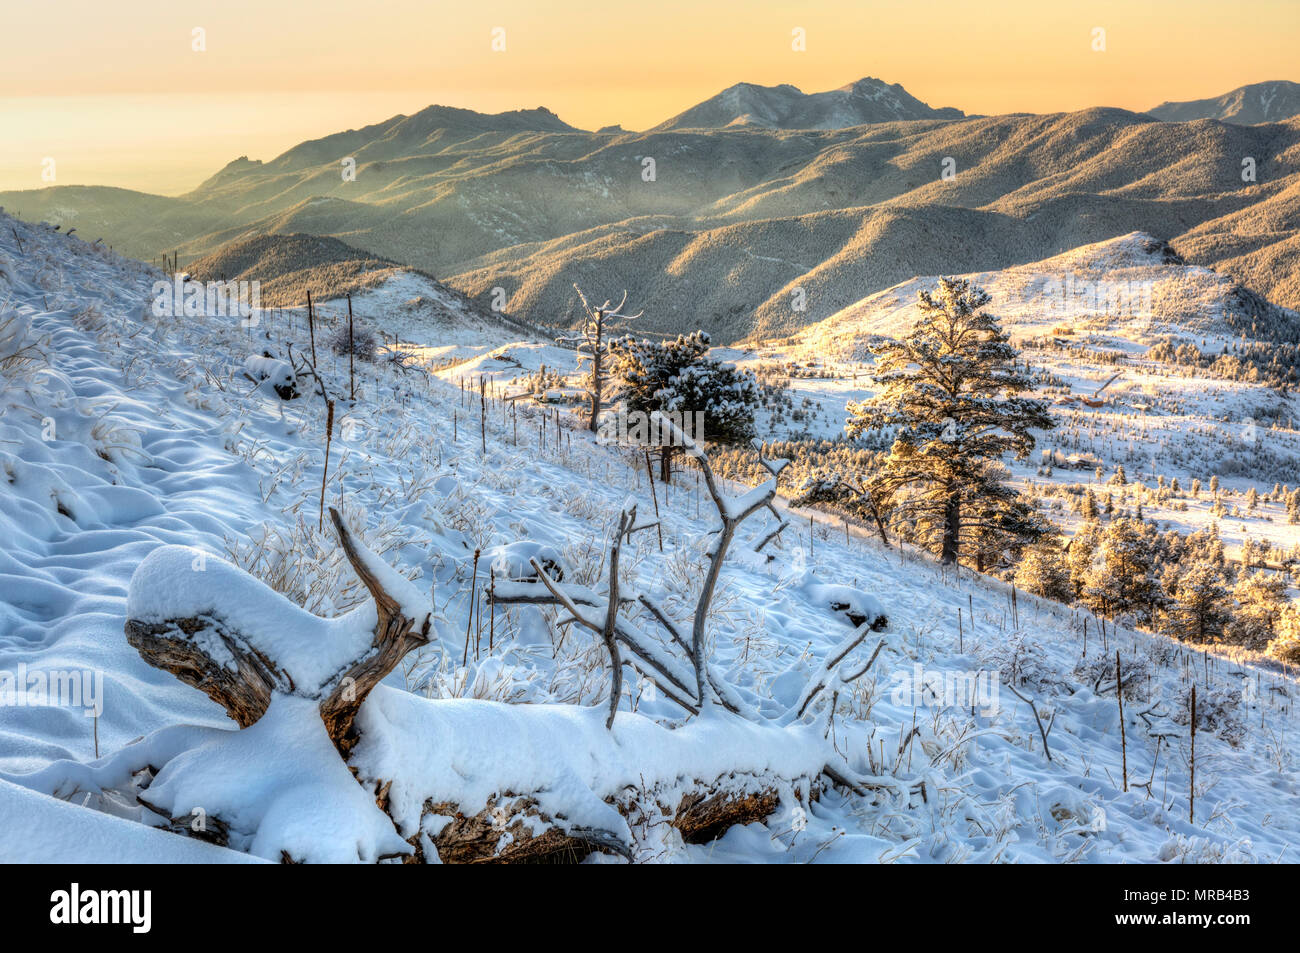 A view east toward Green Mountain at sunrise from snow-clad Sugarloaf Mountain in the Roosevelt Naitonal Forest near Boulder, CO. - Stock Image